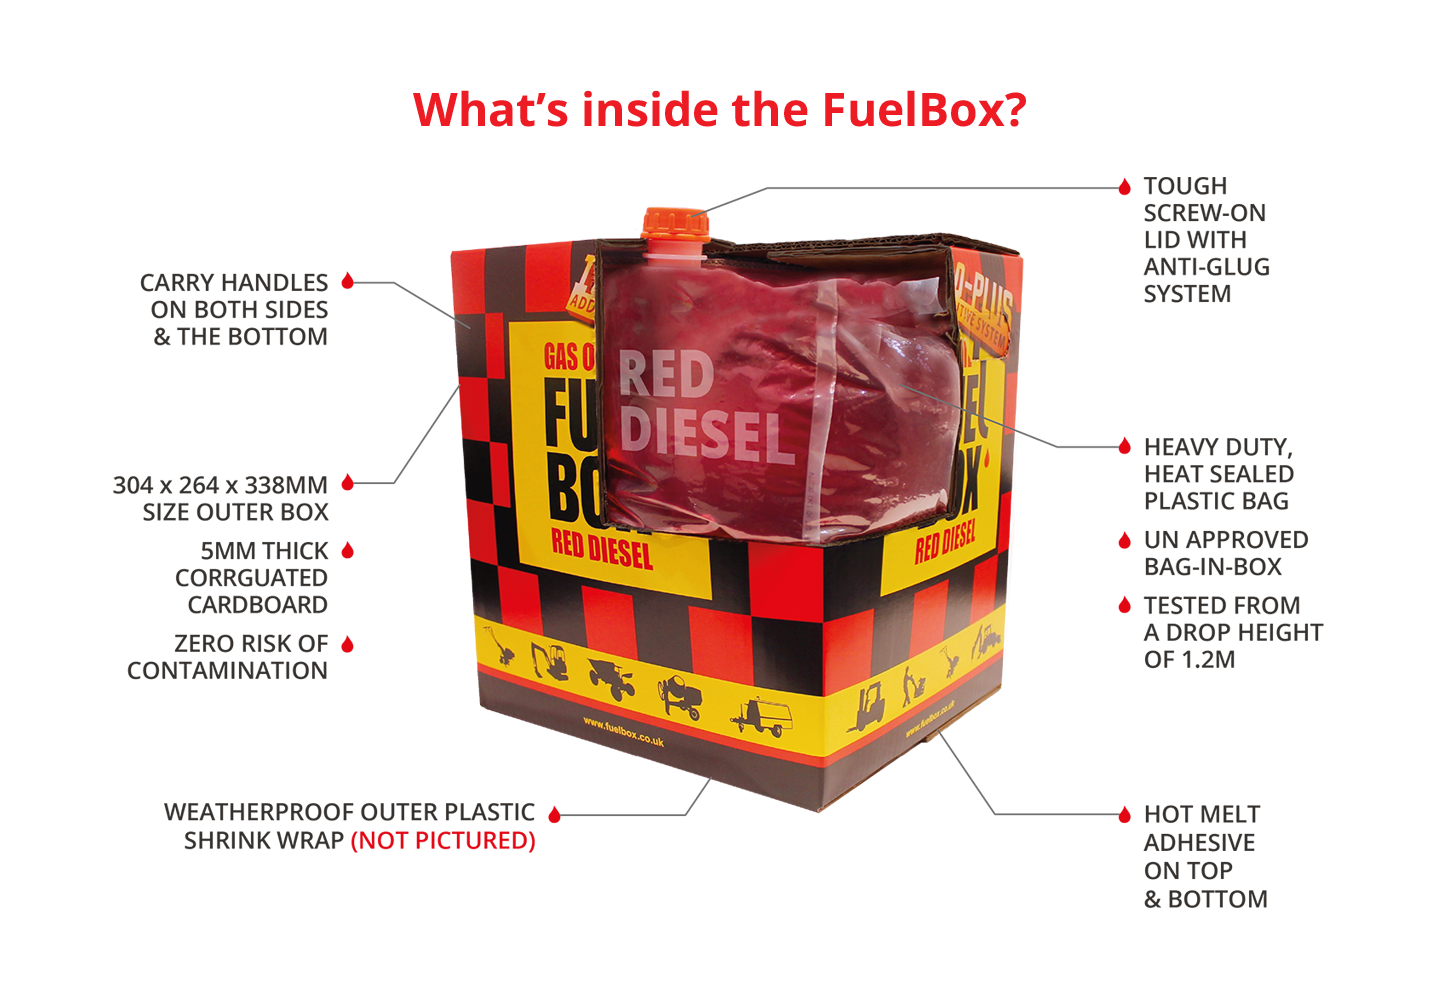 Take a look inside a FuelBox